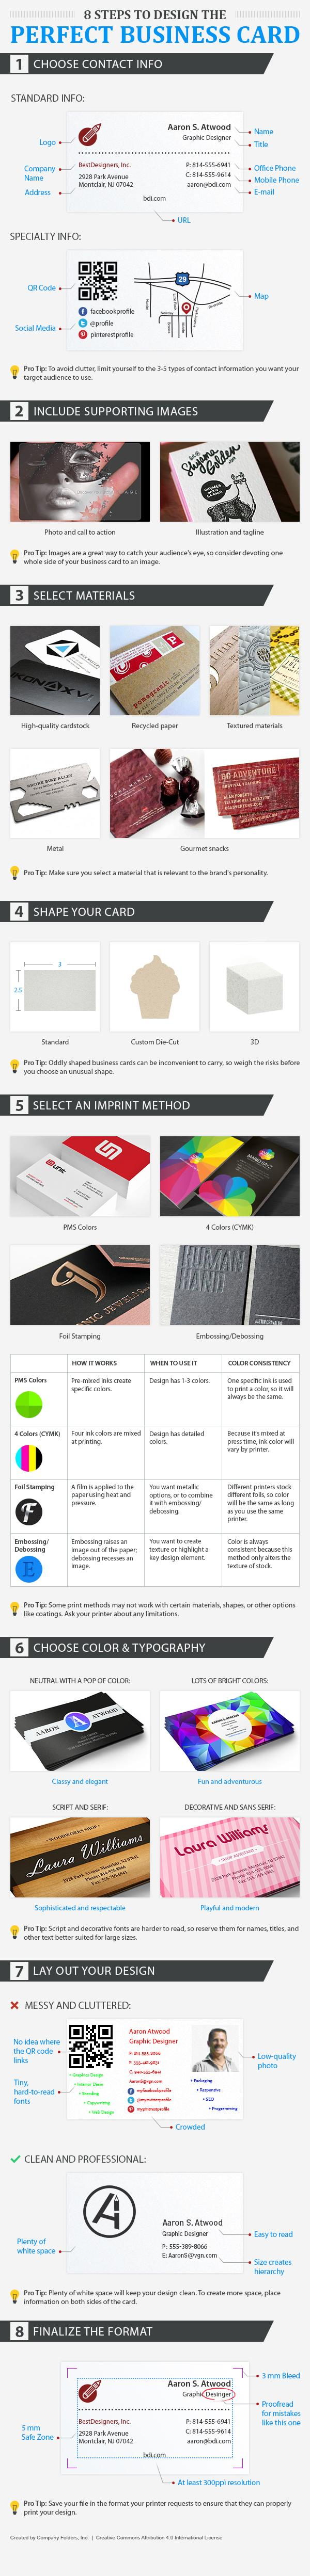 8 Steps to Design the Perfect Business Card